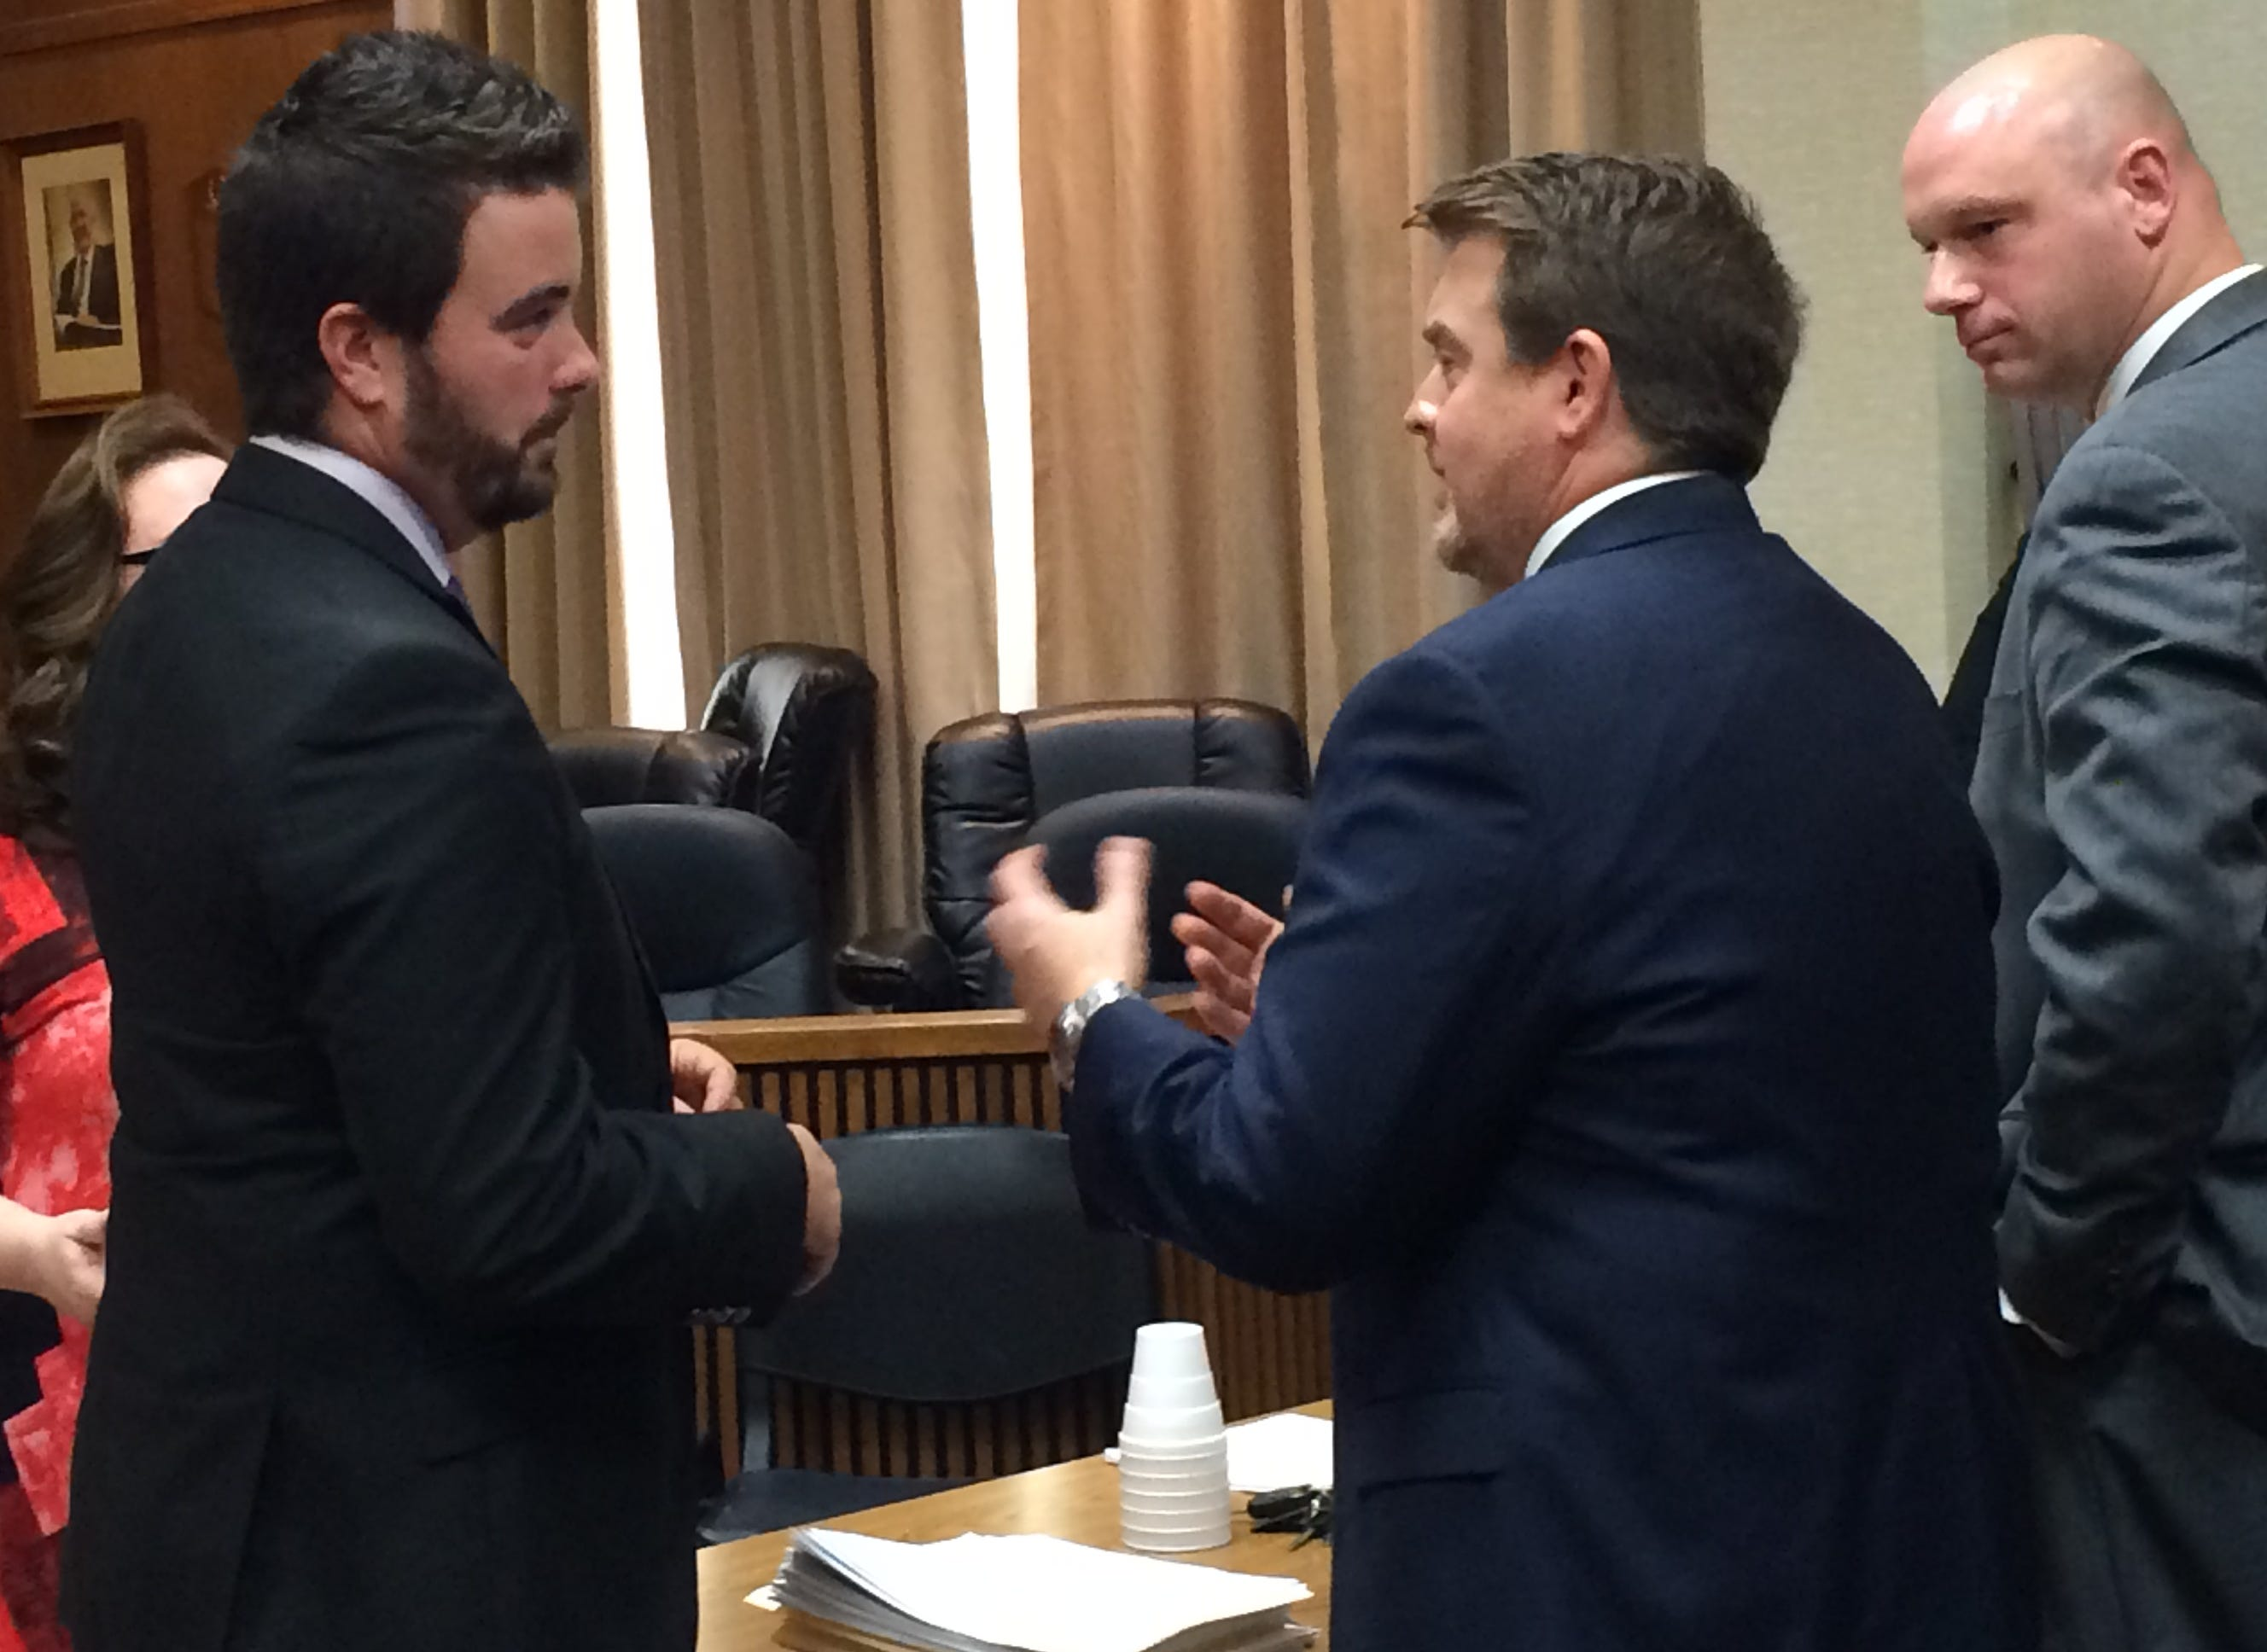 Pictured, from left, Eric Yow, attorney for Erika Castro-Miles, and District Attorney Ray Crouch talk following the hearing for Castro-Miles on Tuesday.